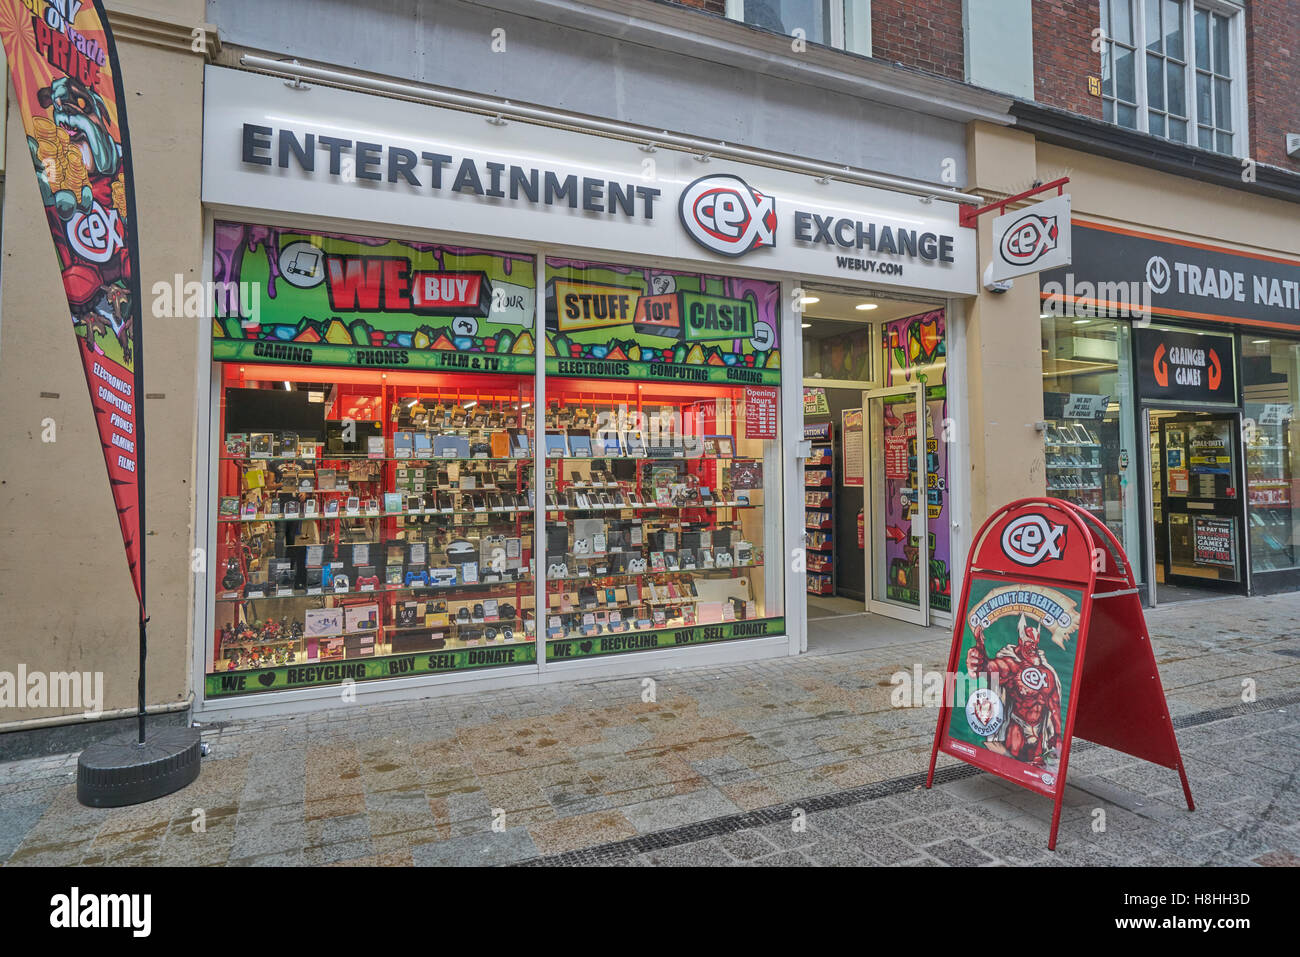 Entertainment Exchange,  second hand electronics shop, - Stock Image